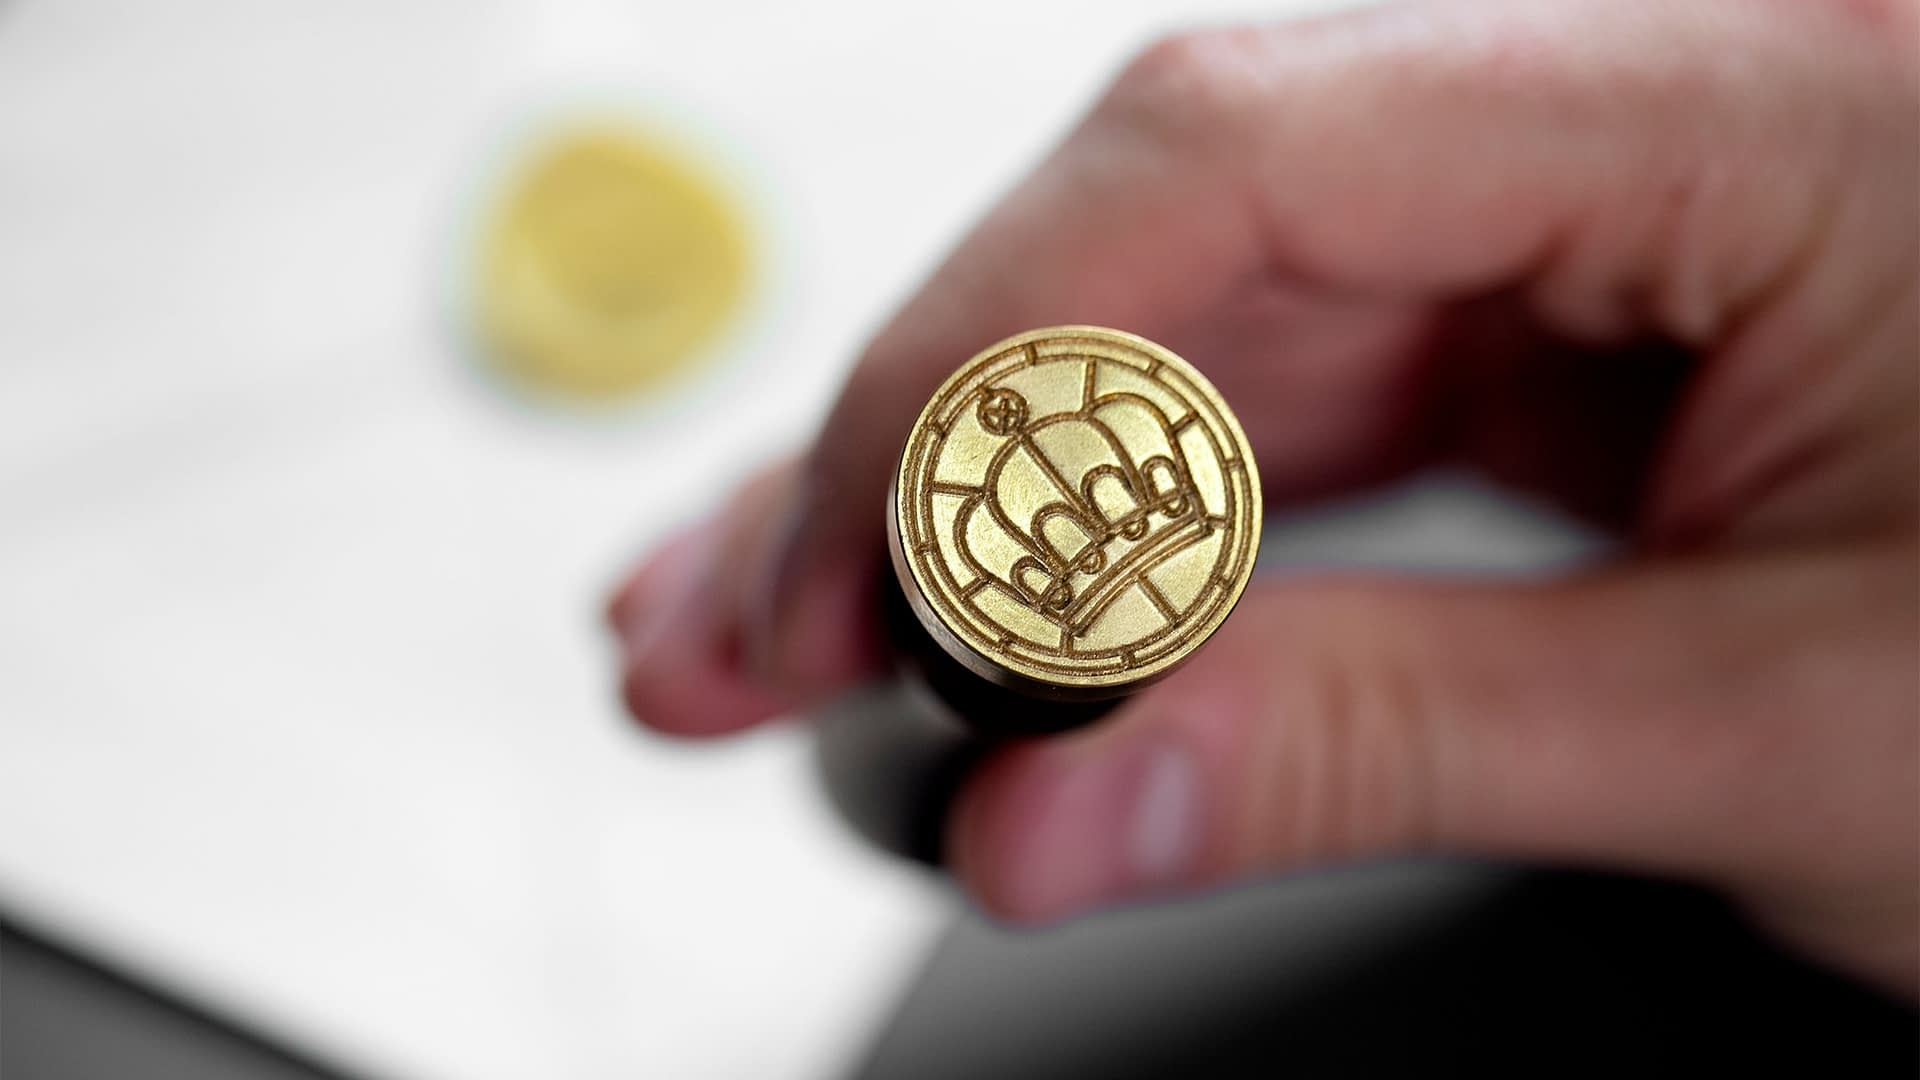 Inn At The Mission logo wax seal stamp